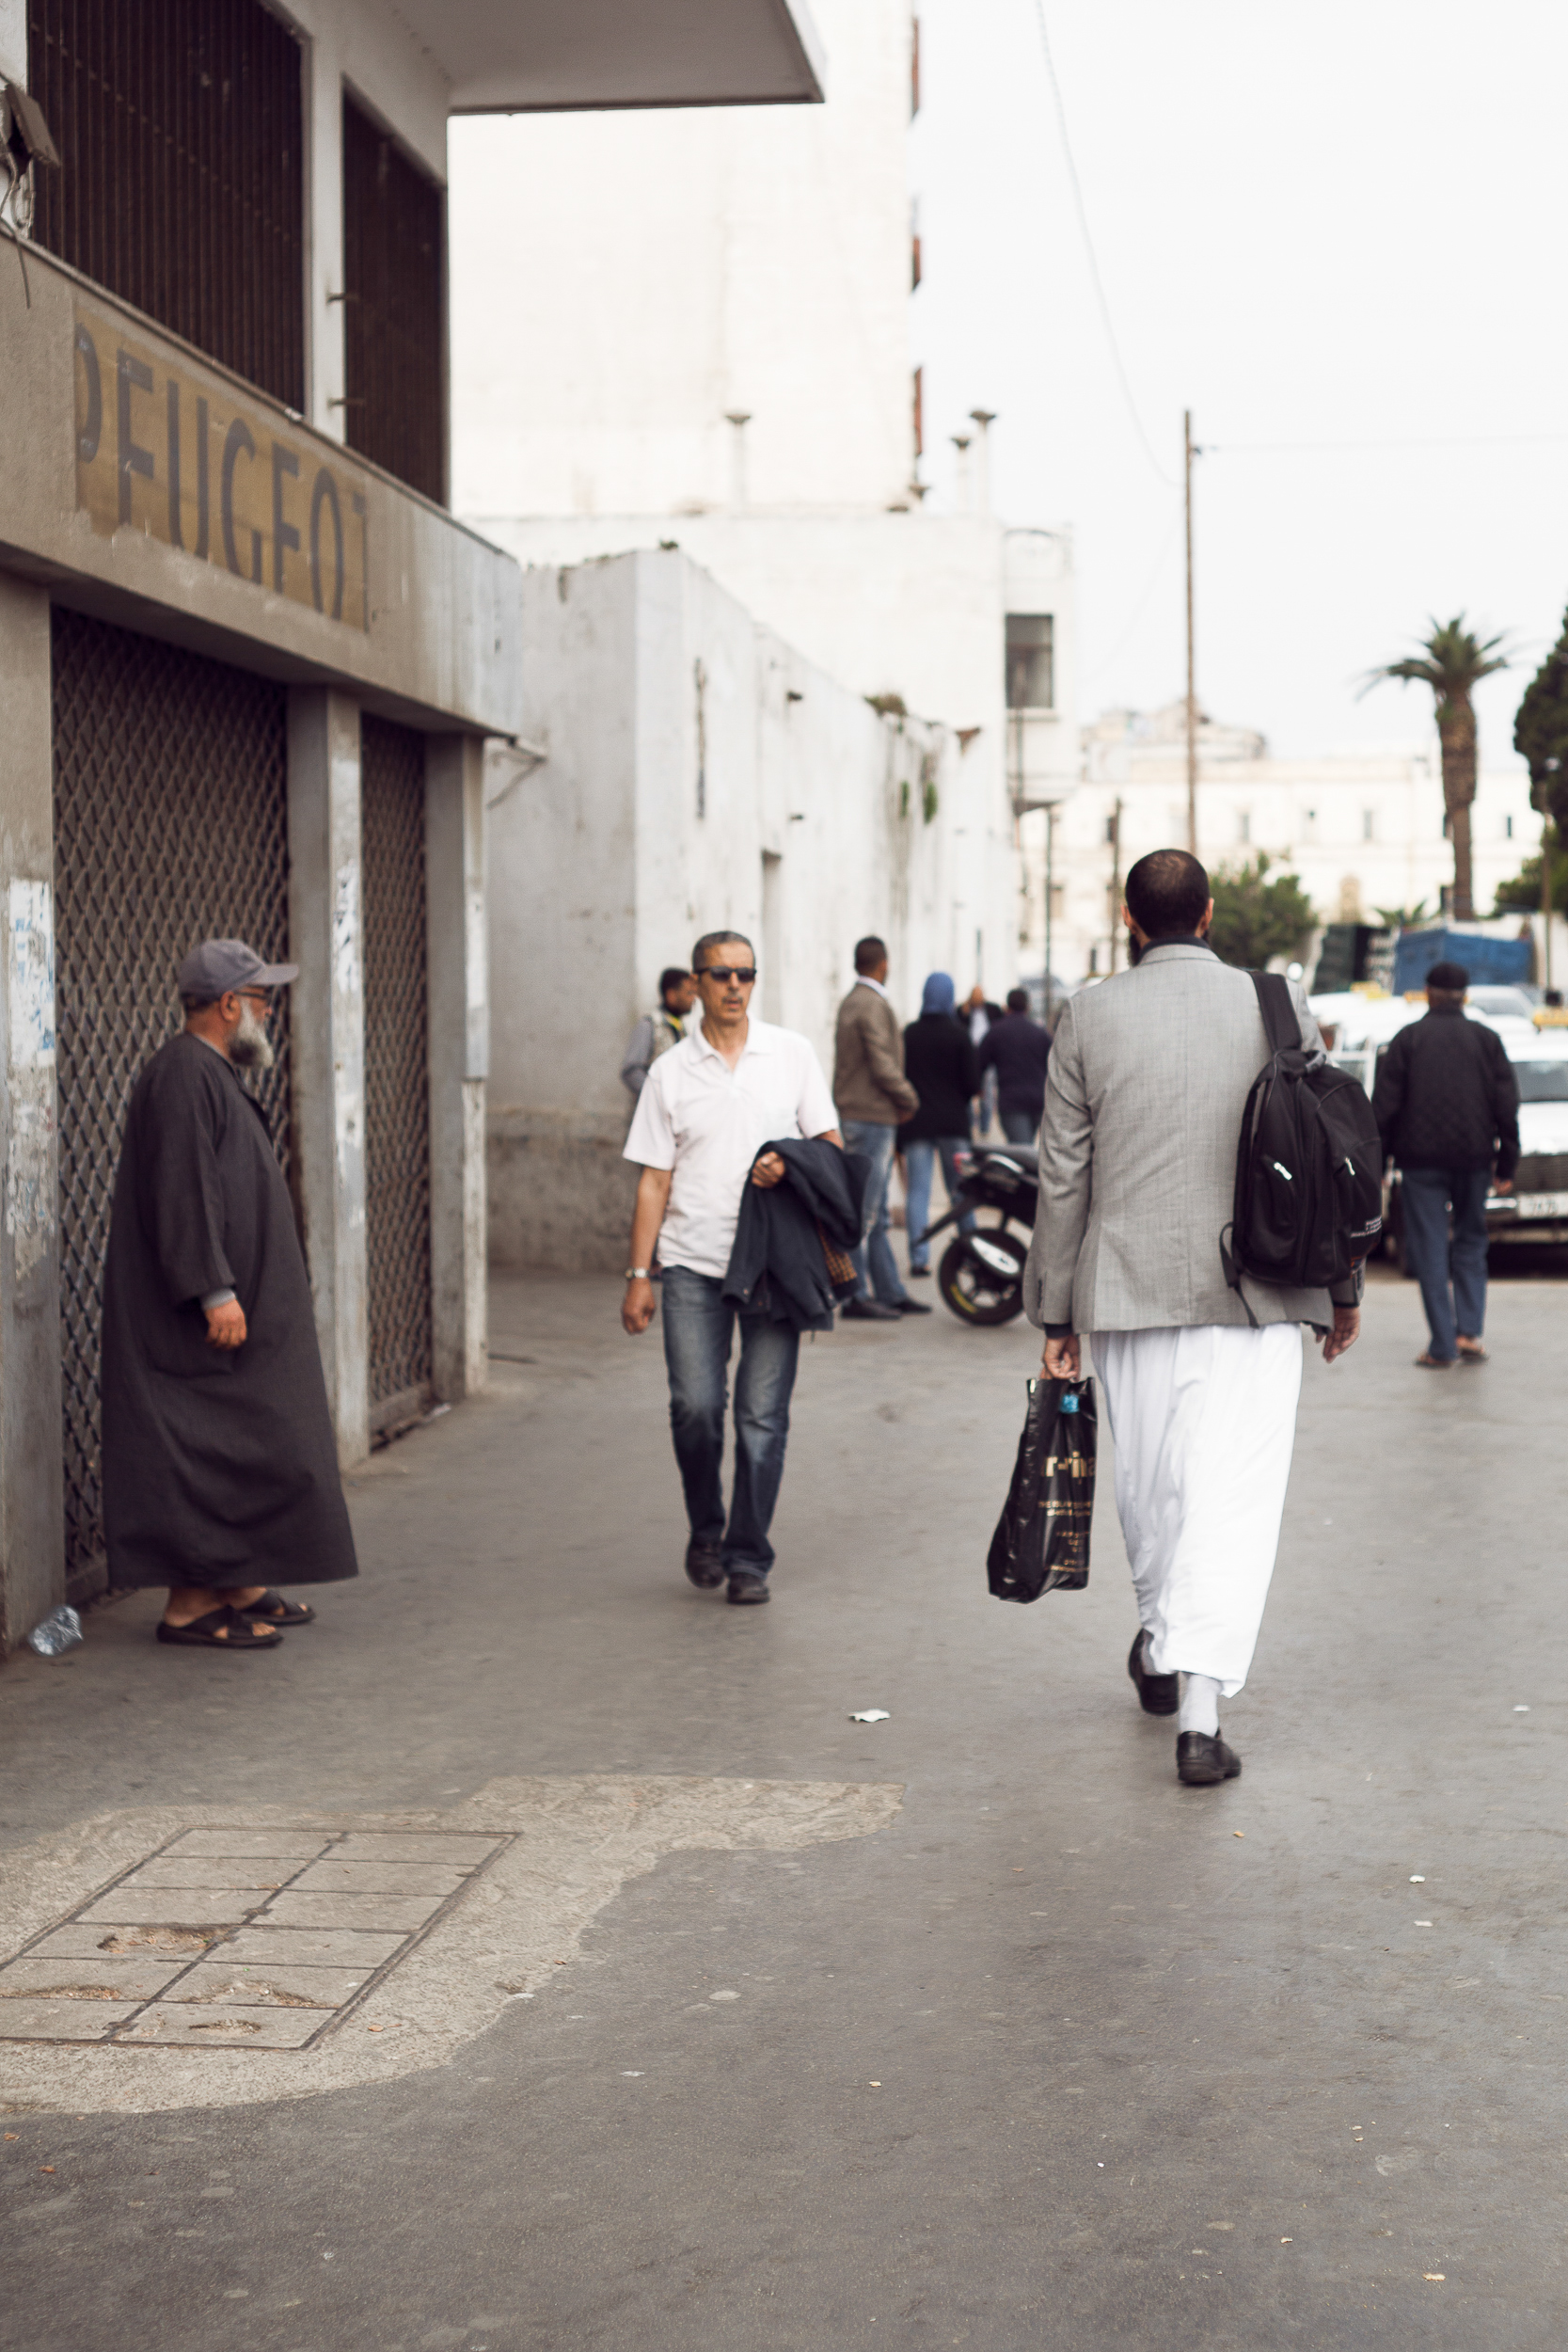 Chacon Images_Casablanca_Travel_WEB_-18.jpg